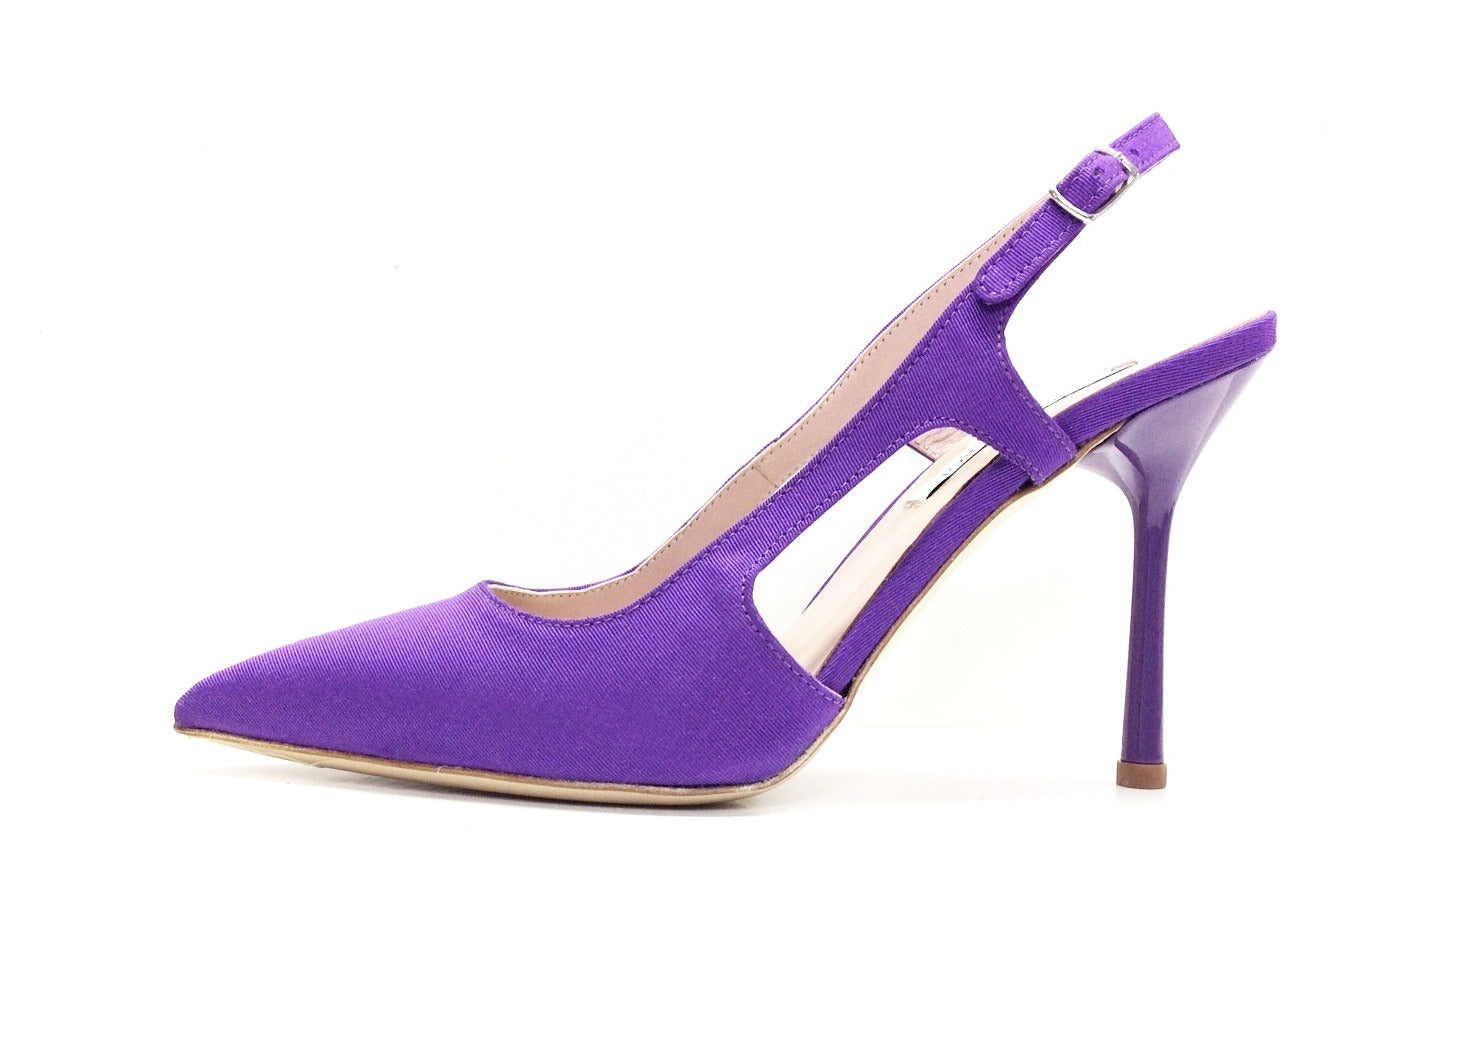 Designer Leather Heels Pump Violet